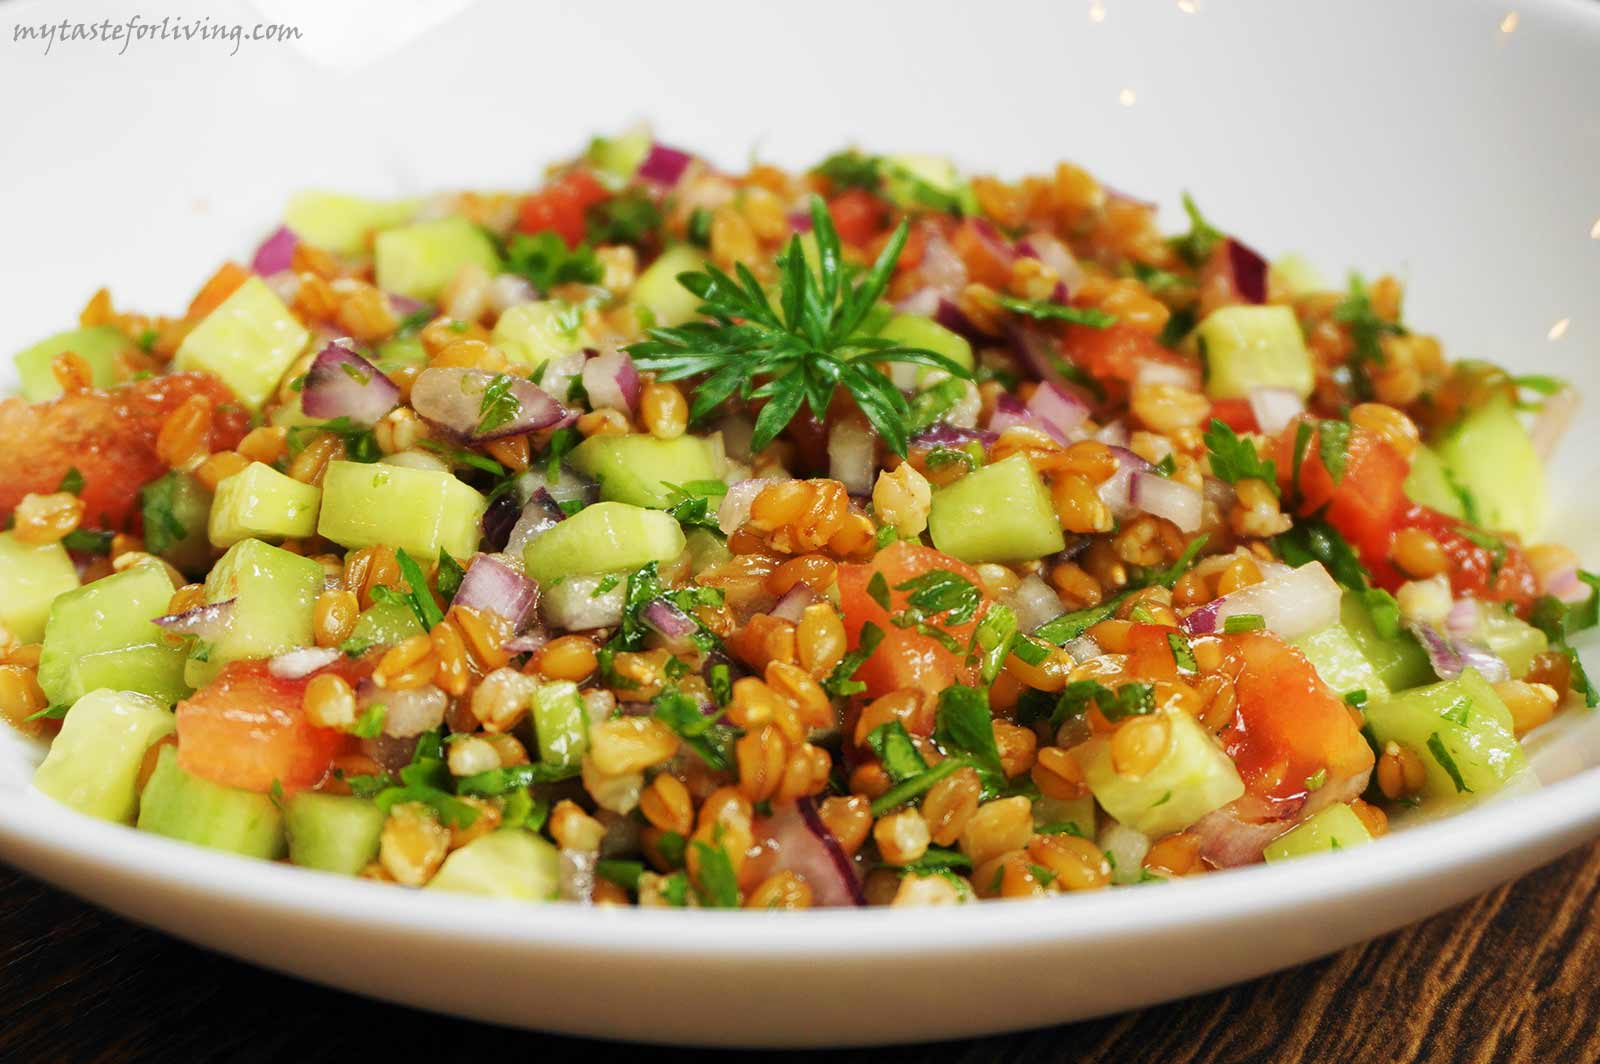 Tabbouleh is a fresh salad of lots of parsley and bulgur with diced cucumbers, tomatoes and onions, flavored with olive oil, lemon juice and salt. I decided to replace bulgur with einkorn, which resulted in a delicious and nutritious salad.